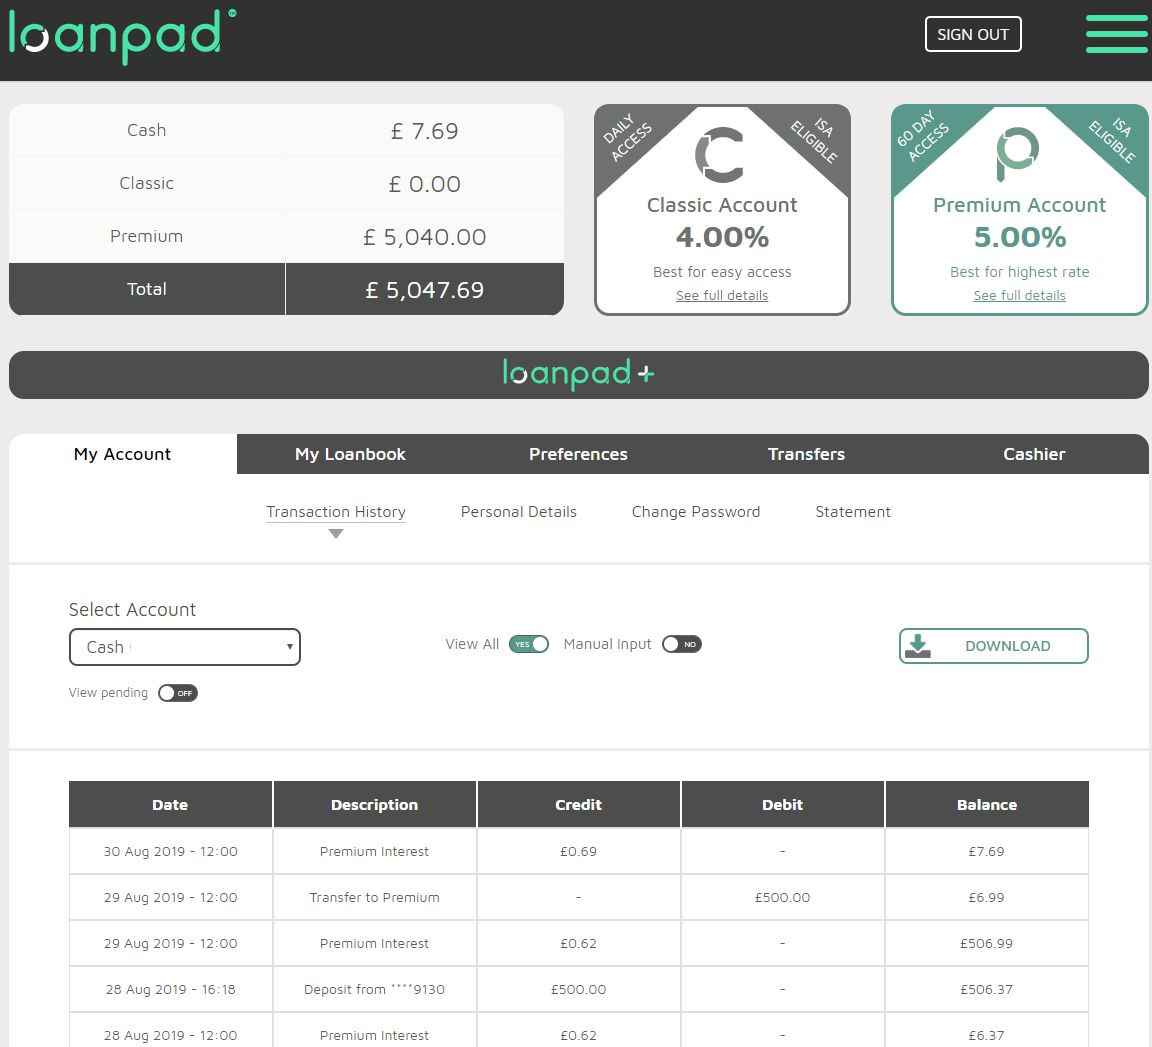 Loanpad Account Screenshot for Peer to Peer Lending Update - August 2019 1